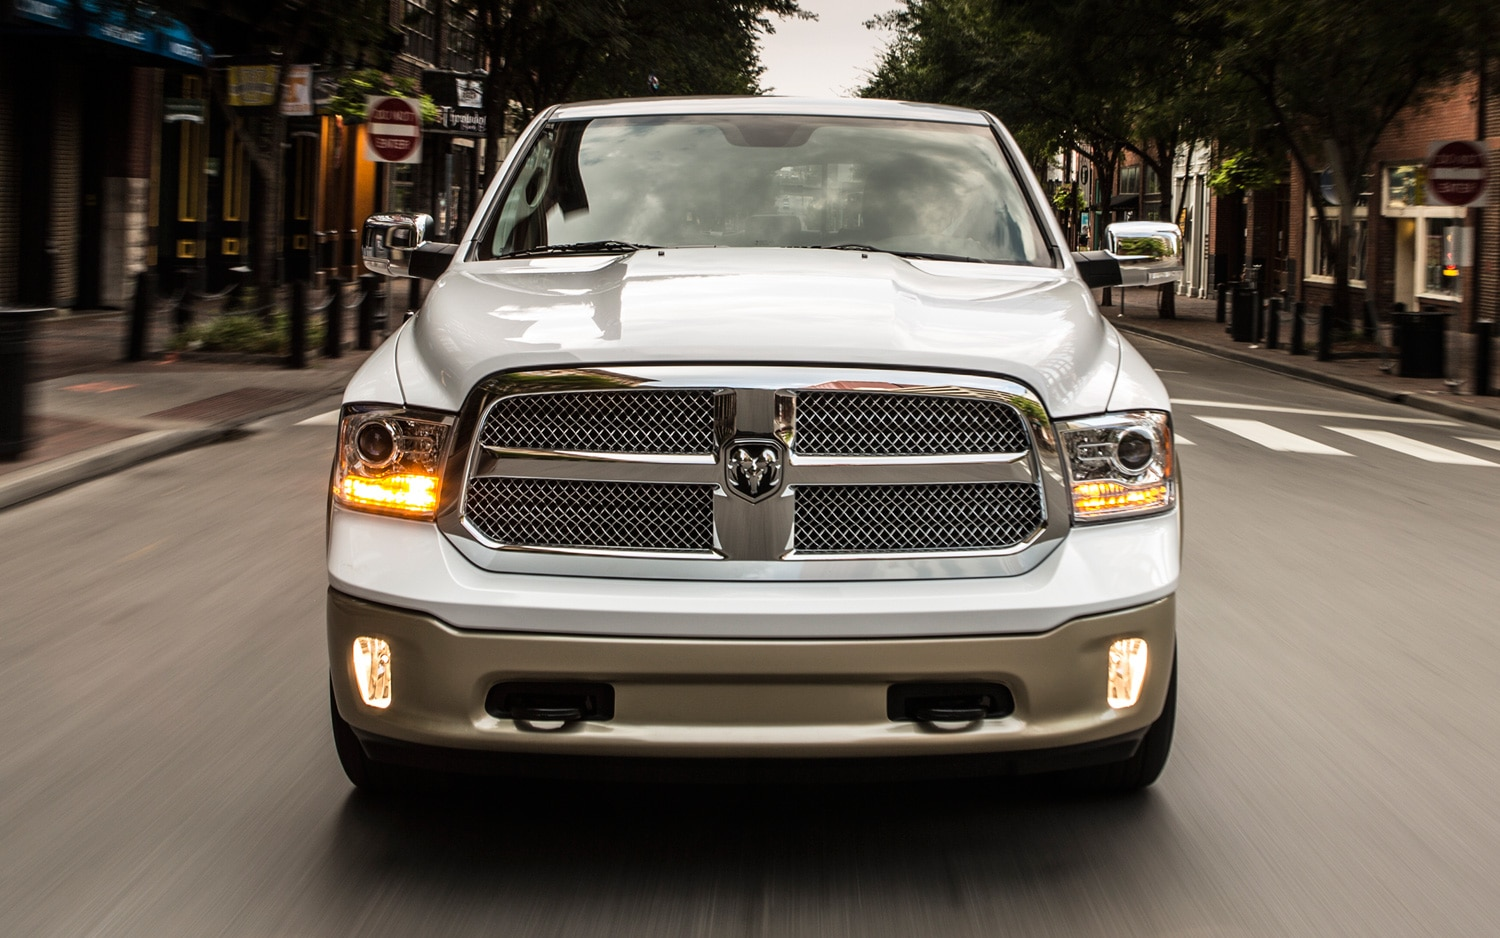 2013 Ram 1500 Front Profile View1